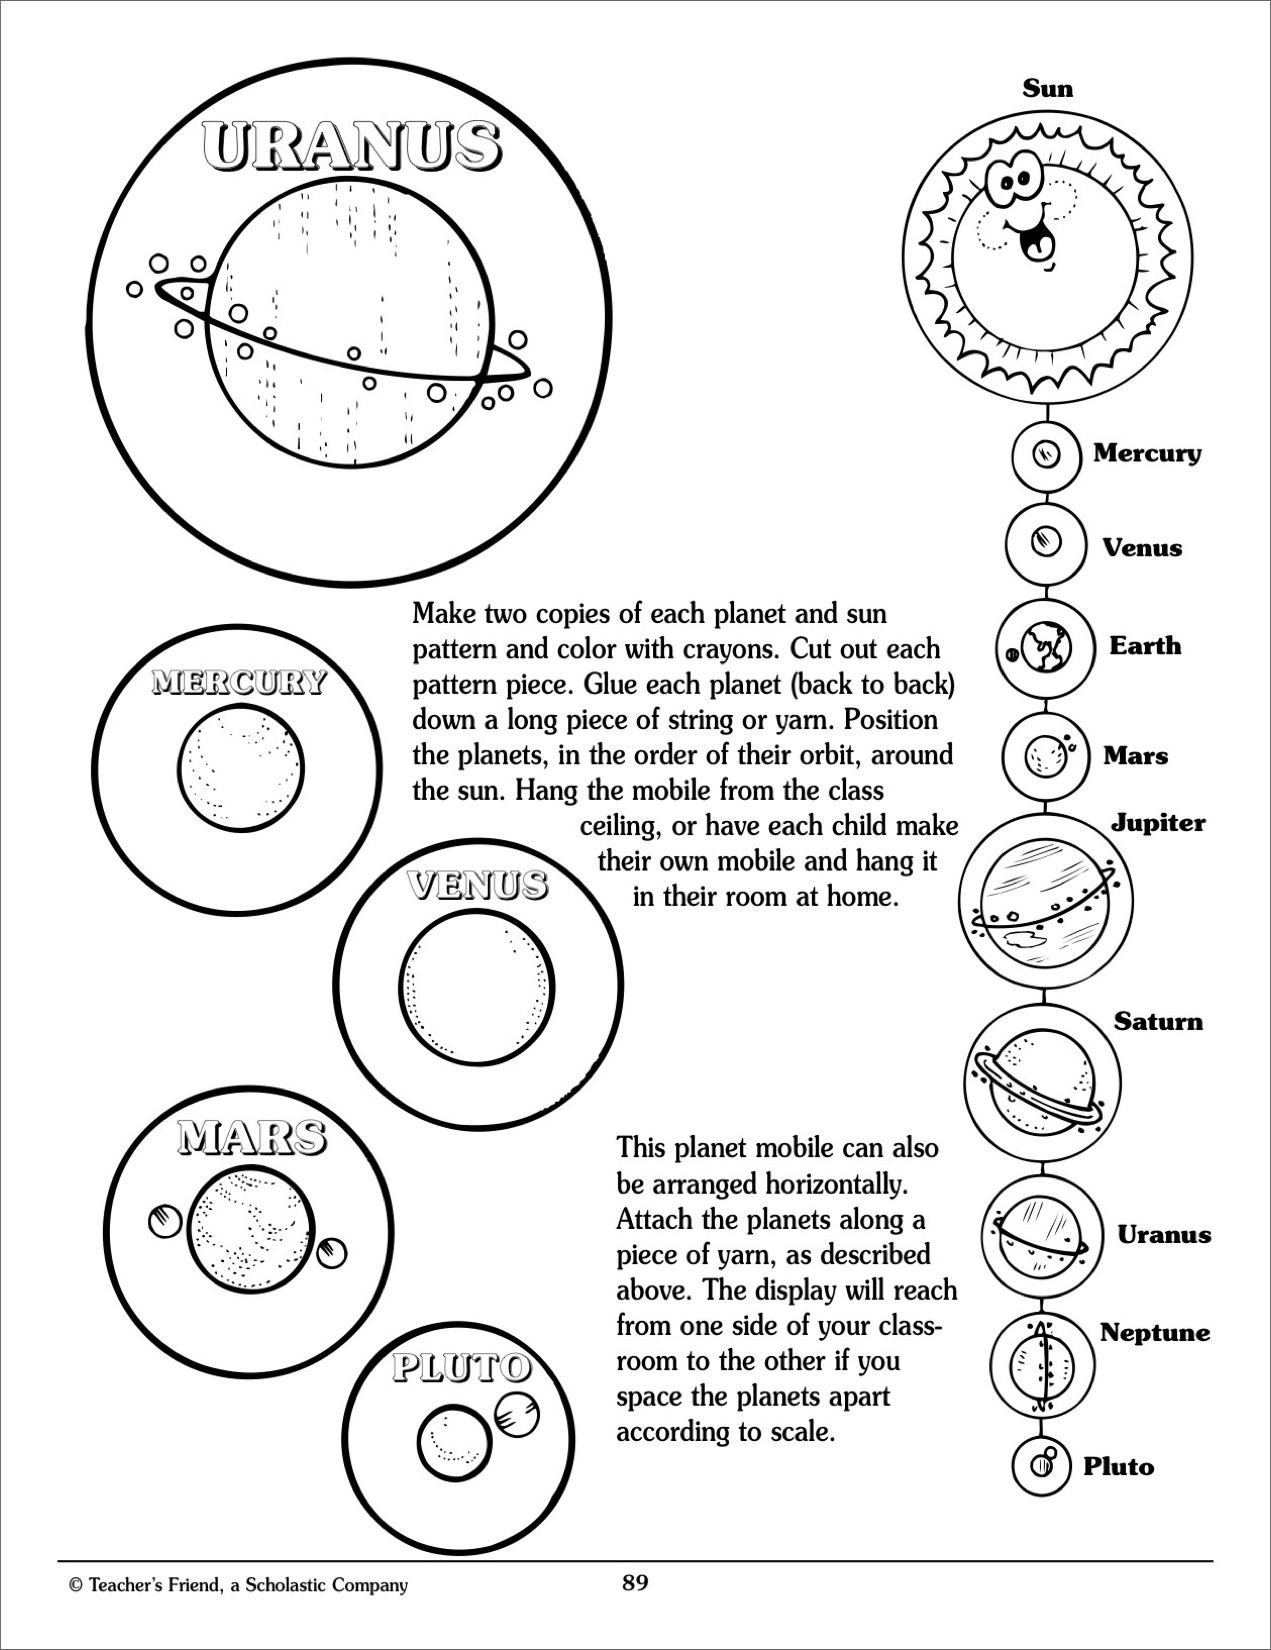 solar system cut out template - photo #11